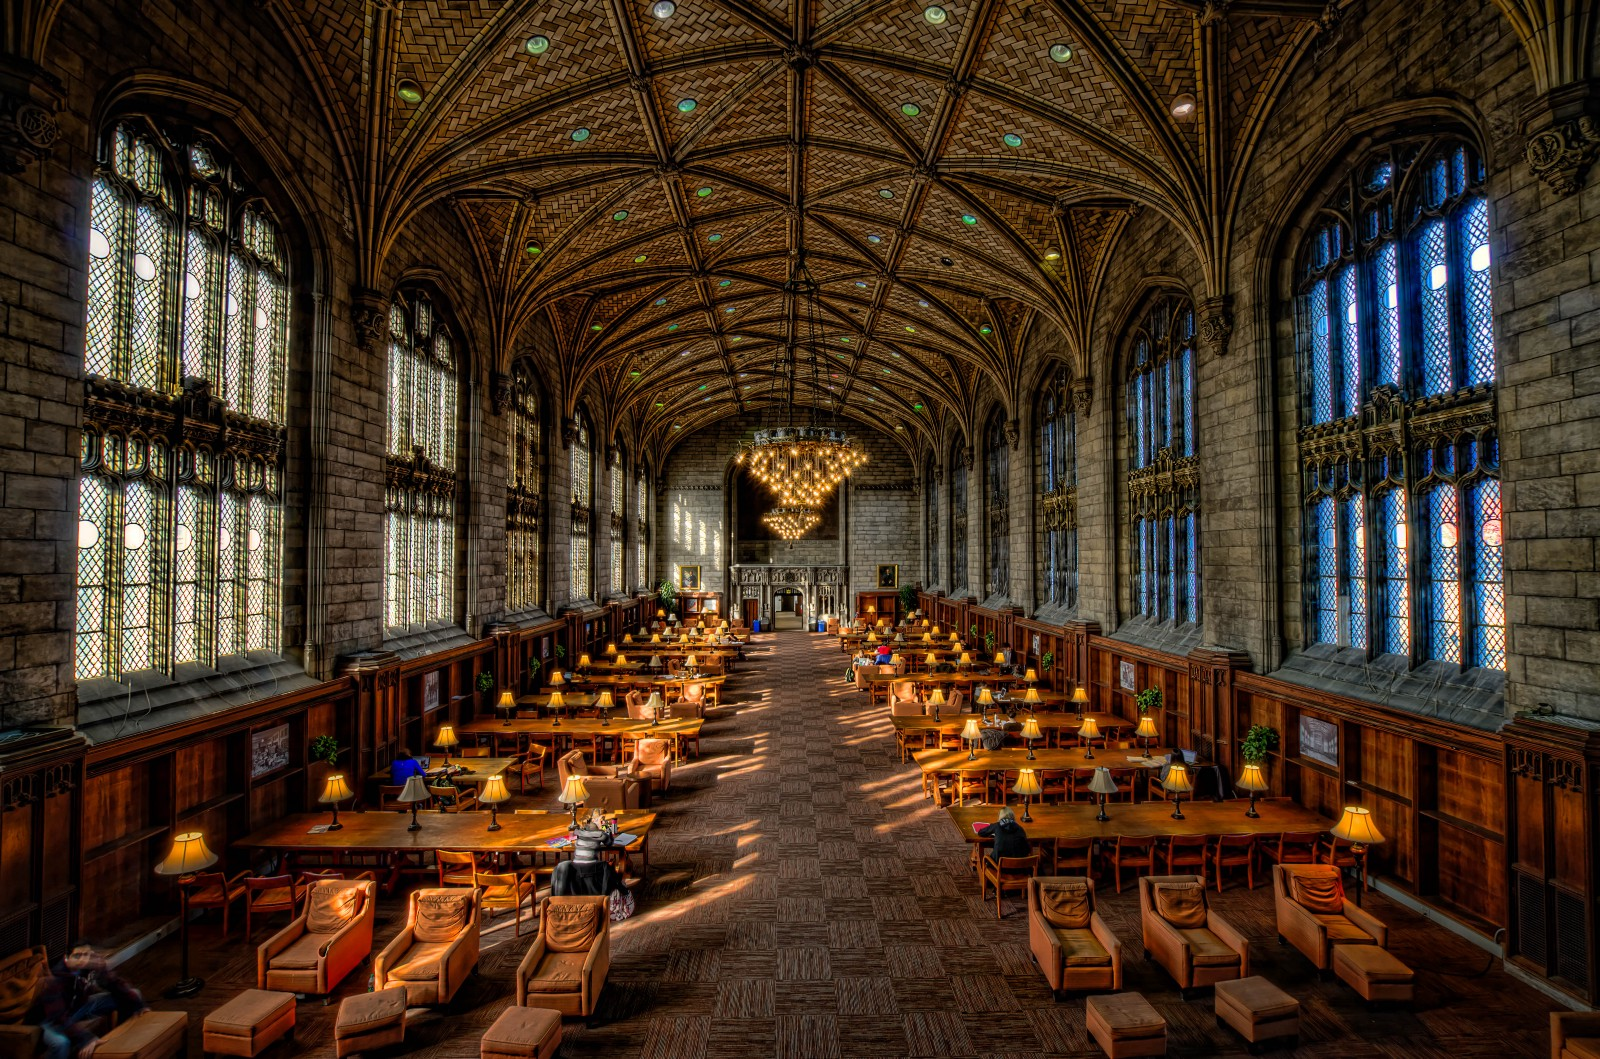 The Harper Library at the University of Chicago